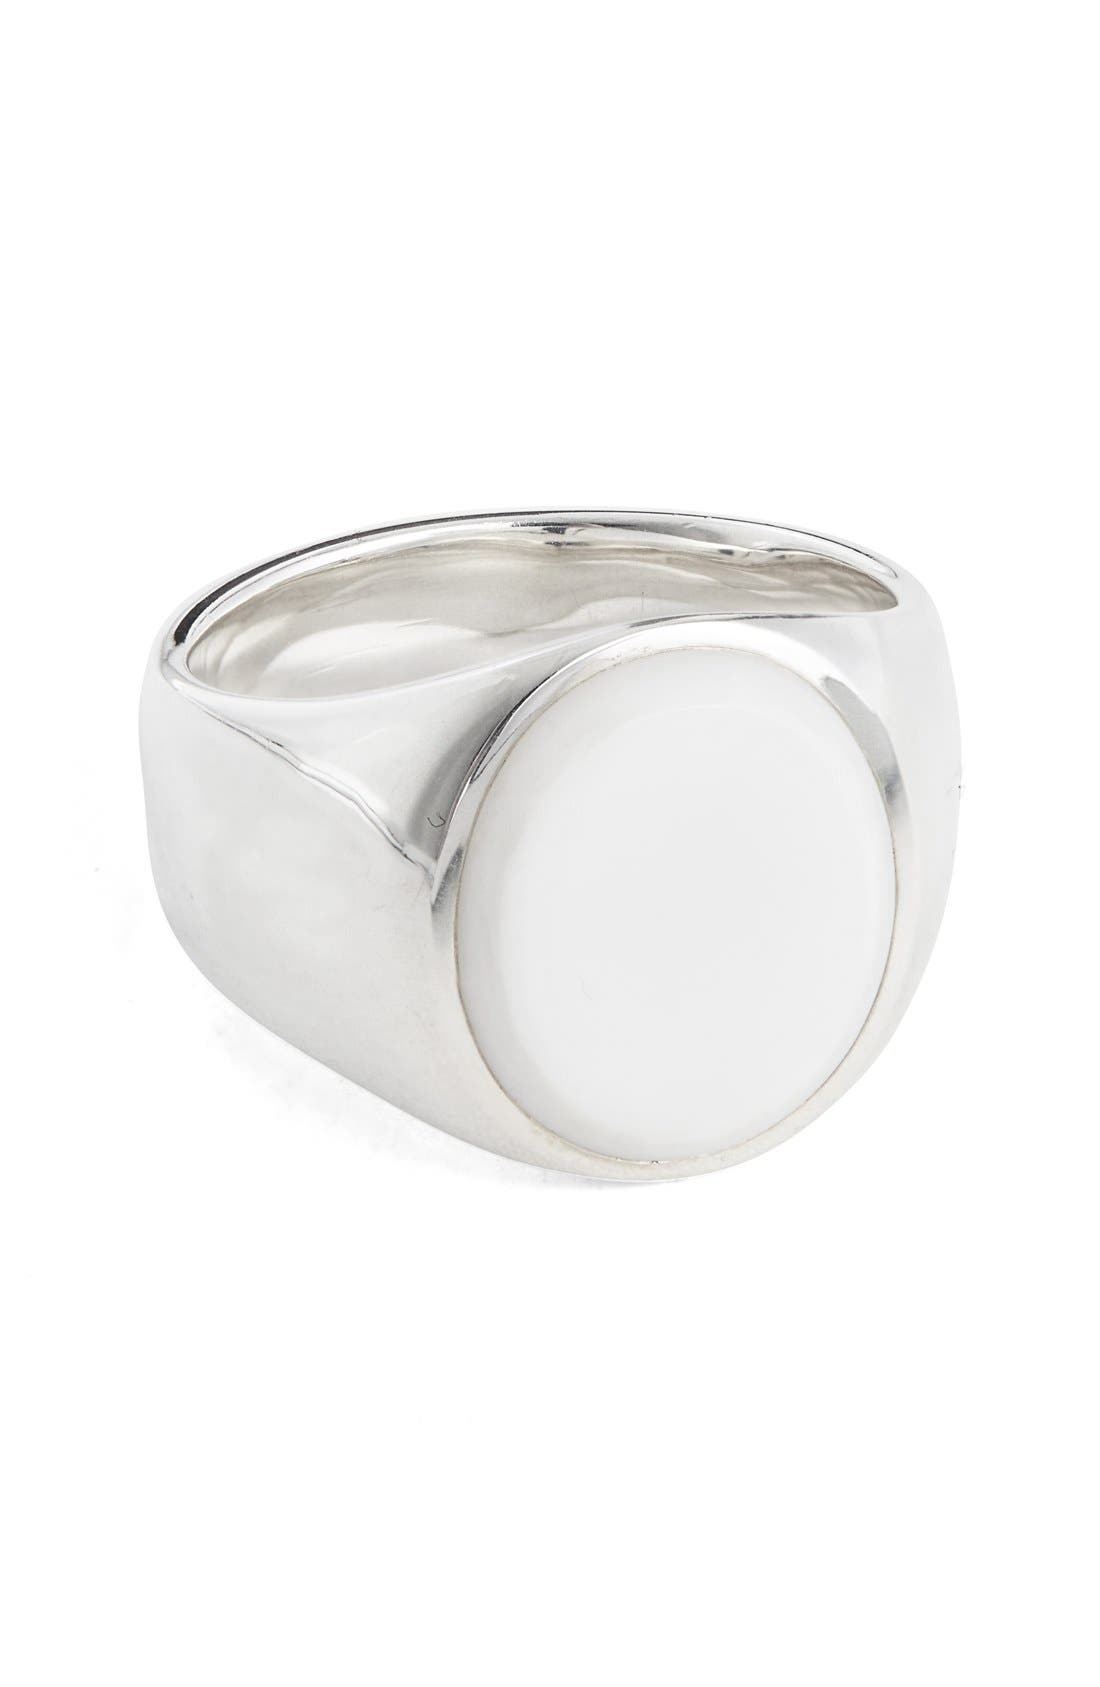 'Patriot Collection' Oval White Agate Signet Ring,                         Main,                         color,